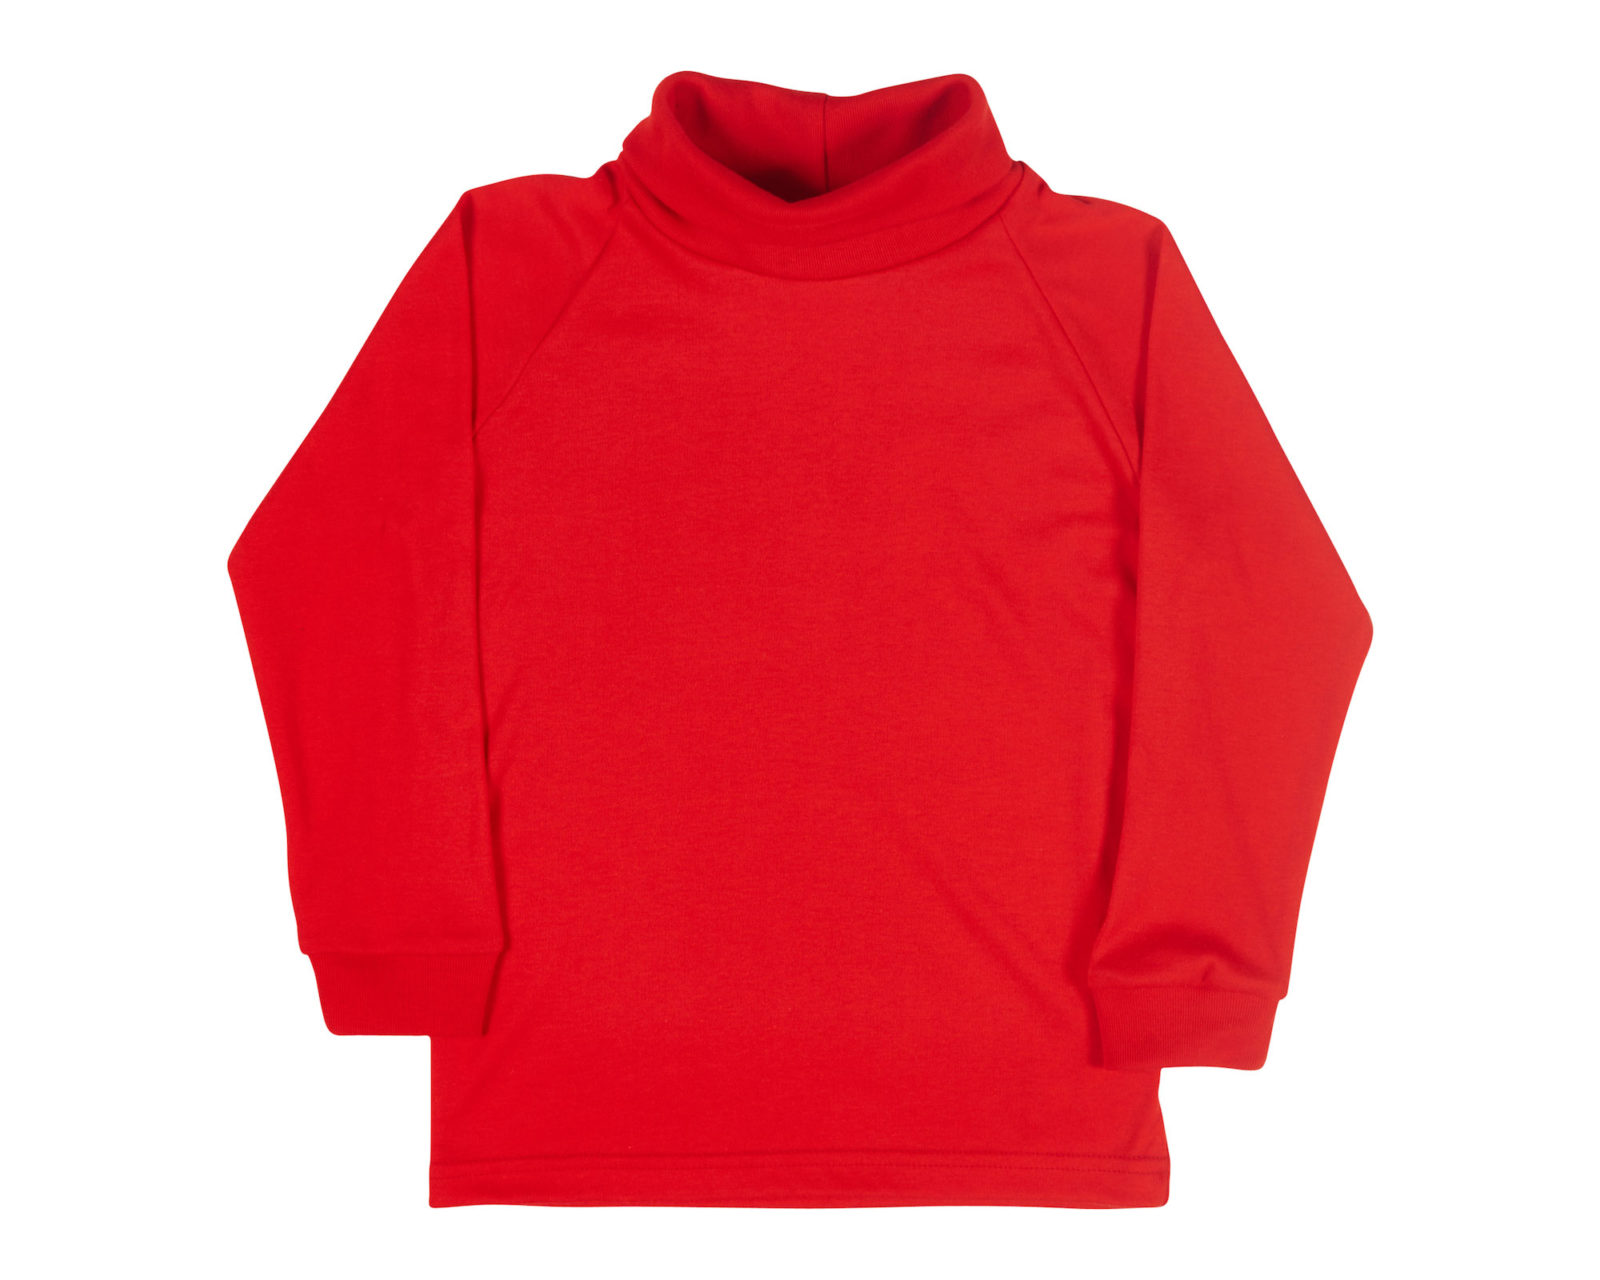 Qualitops Kids Skivvy Polycotton Australian made clothing